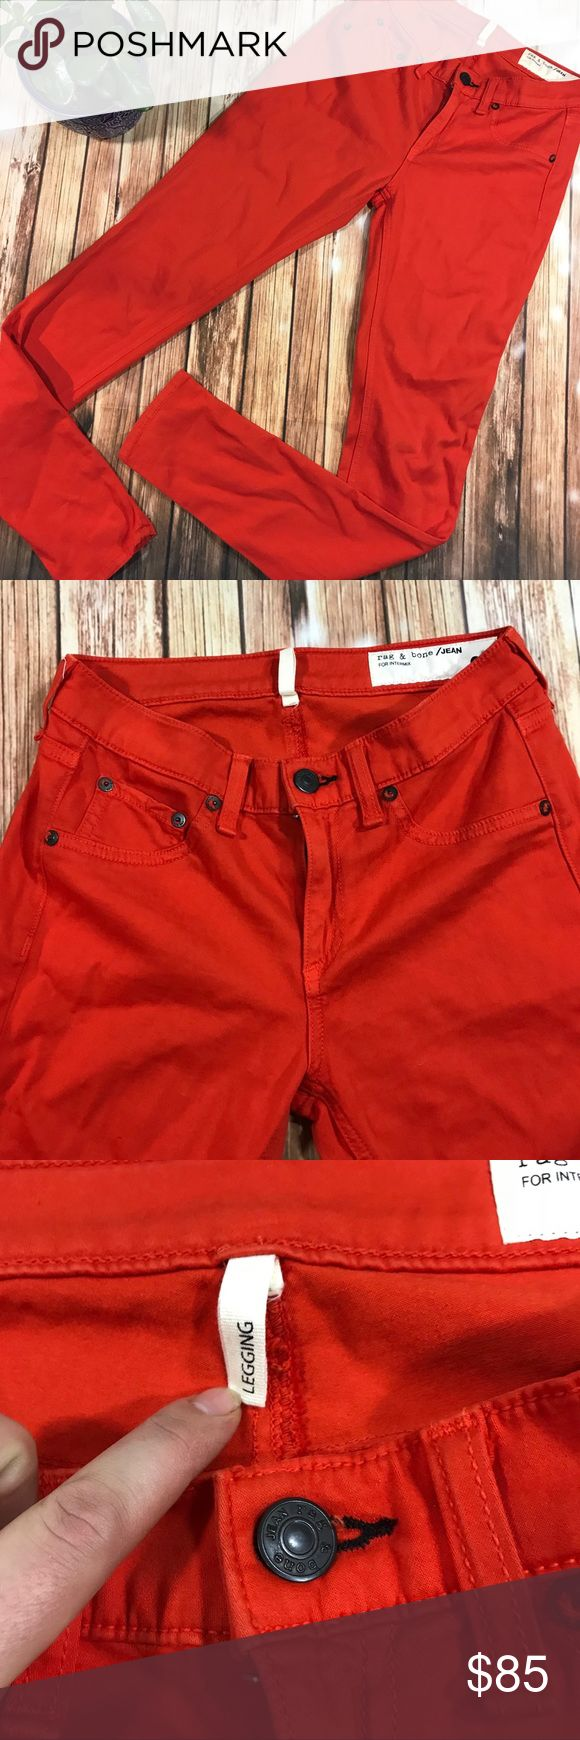 Rag and Bone fire red jeans New without tag, never been worn. Gorgeous bright fire engine road color. Stretchy leggings pants amazing soft mix of cotton and modal mix. Size 26 ankle length. rag & bone Pants Leggings